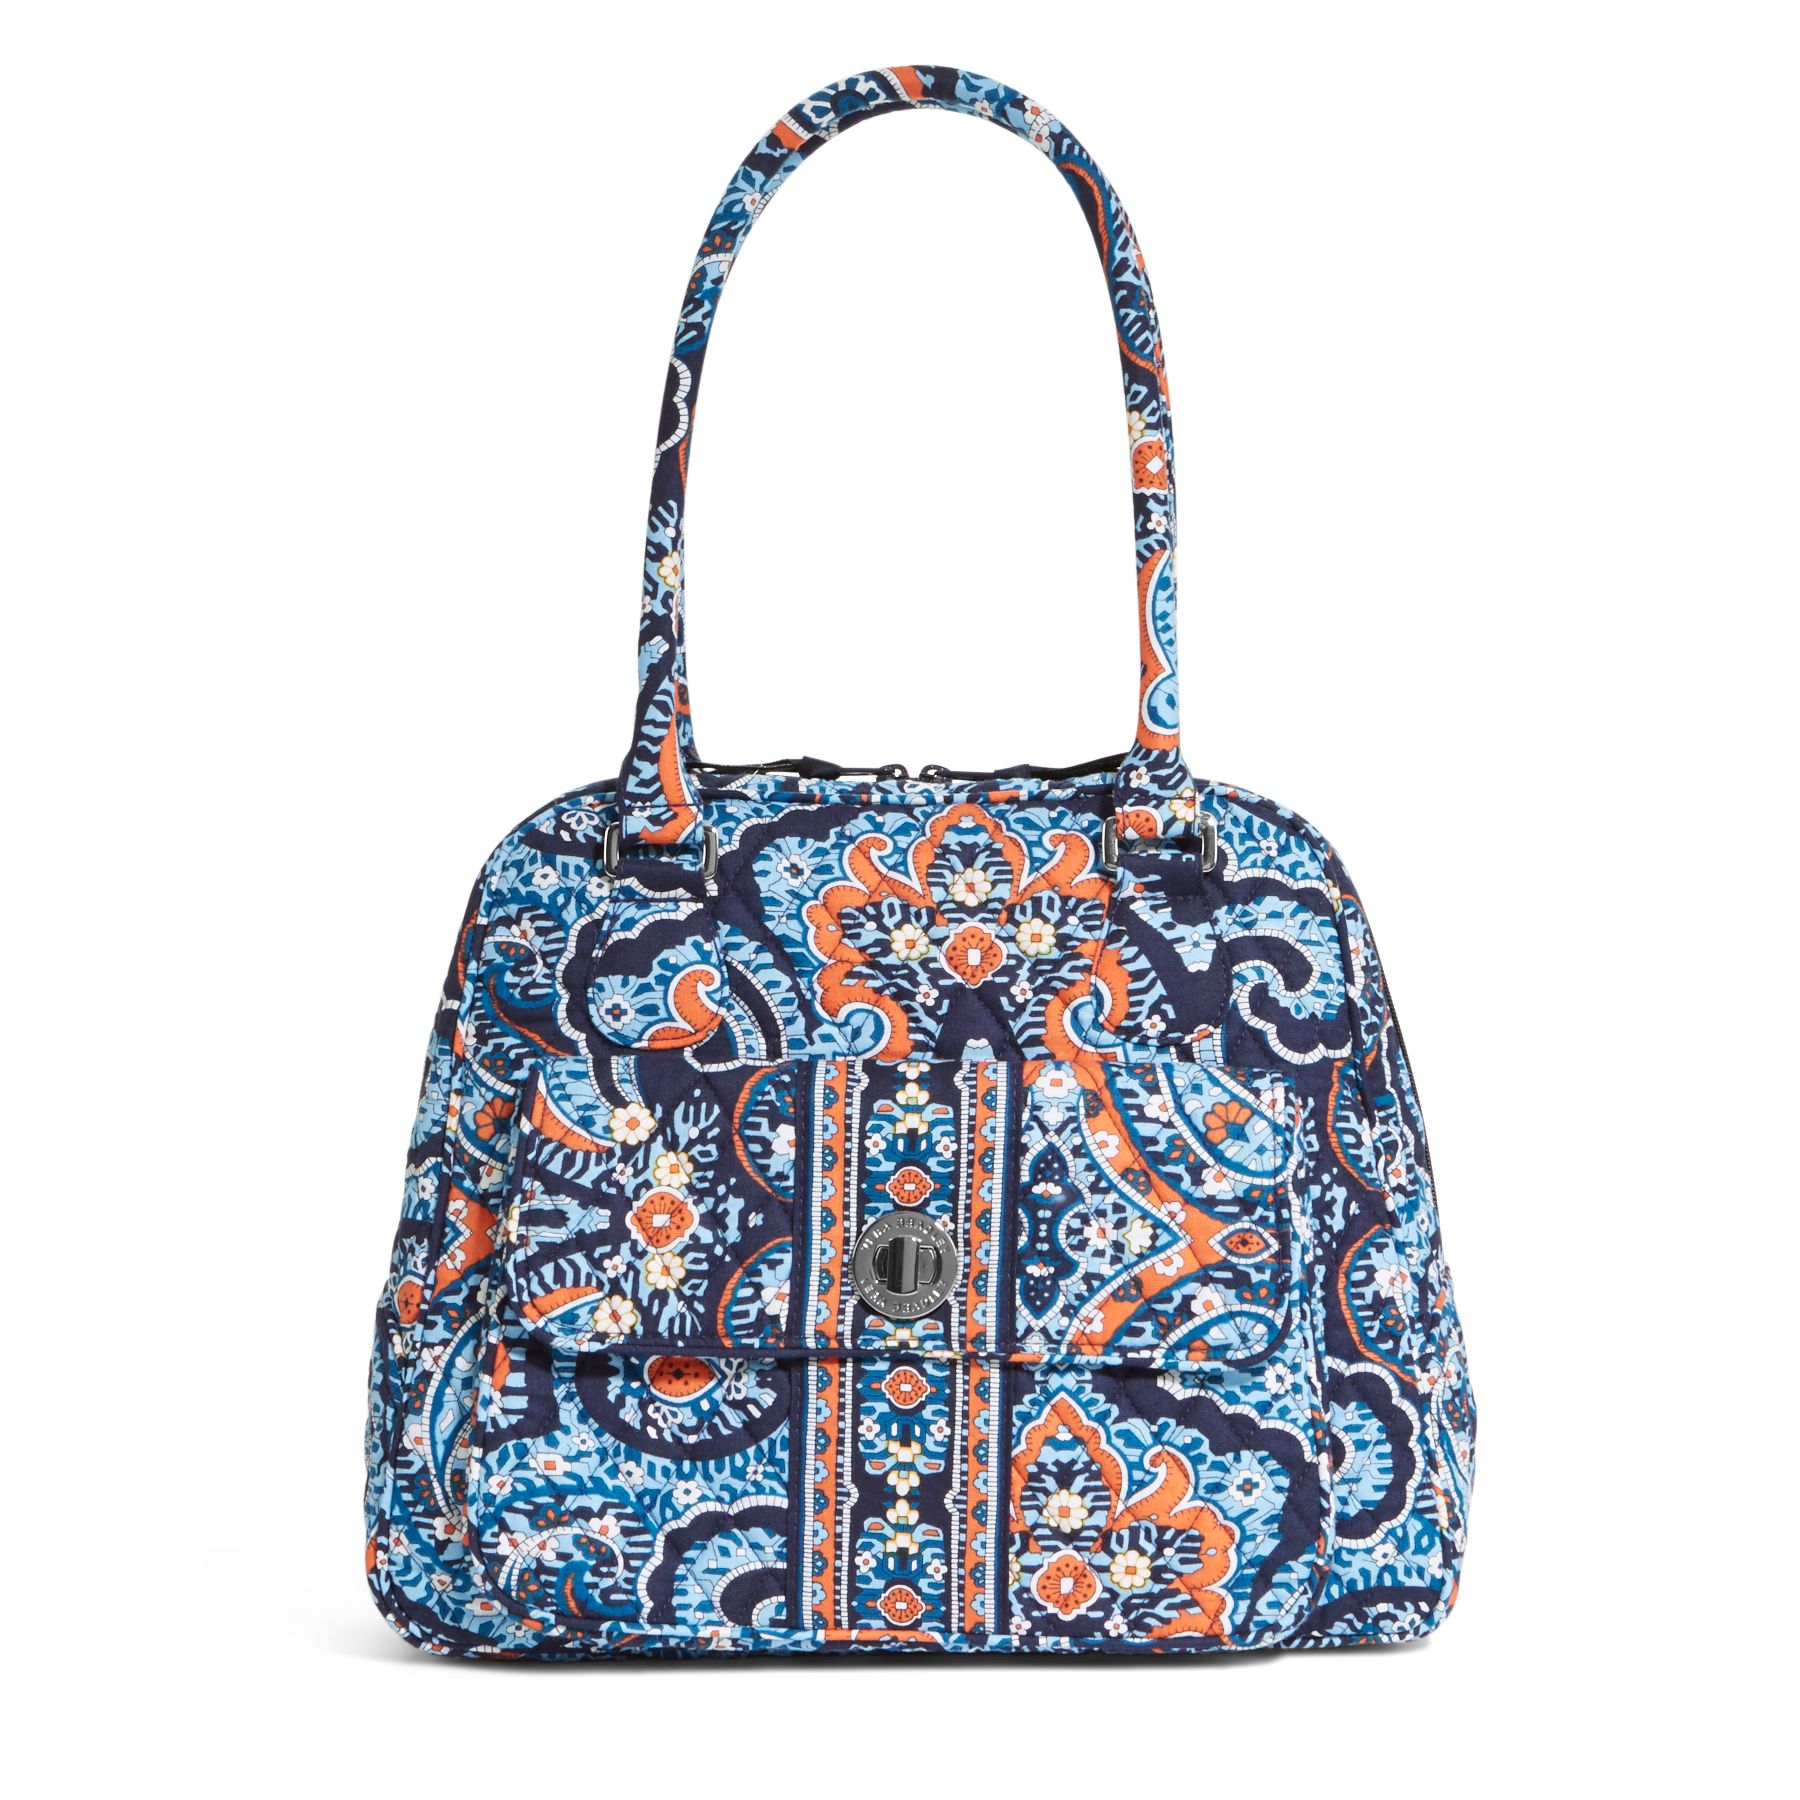 Vera Bradley Turn Lock Satchel in Marrakesh